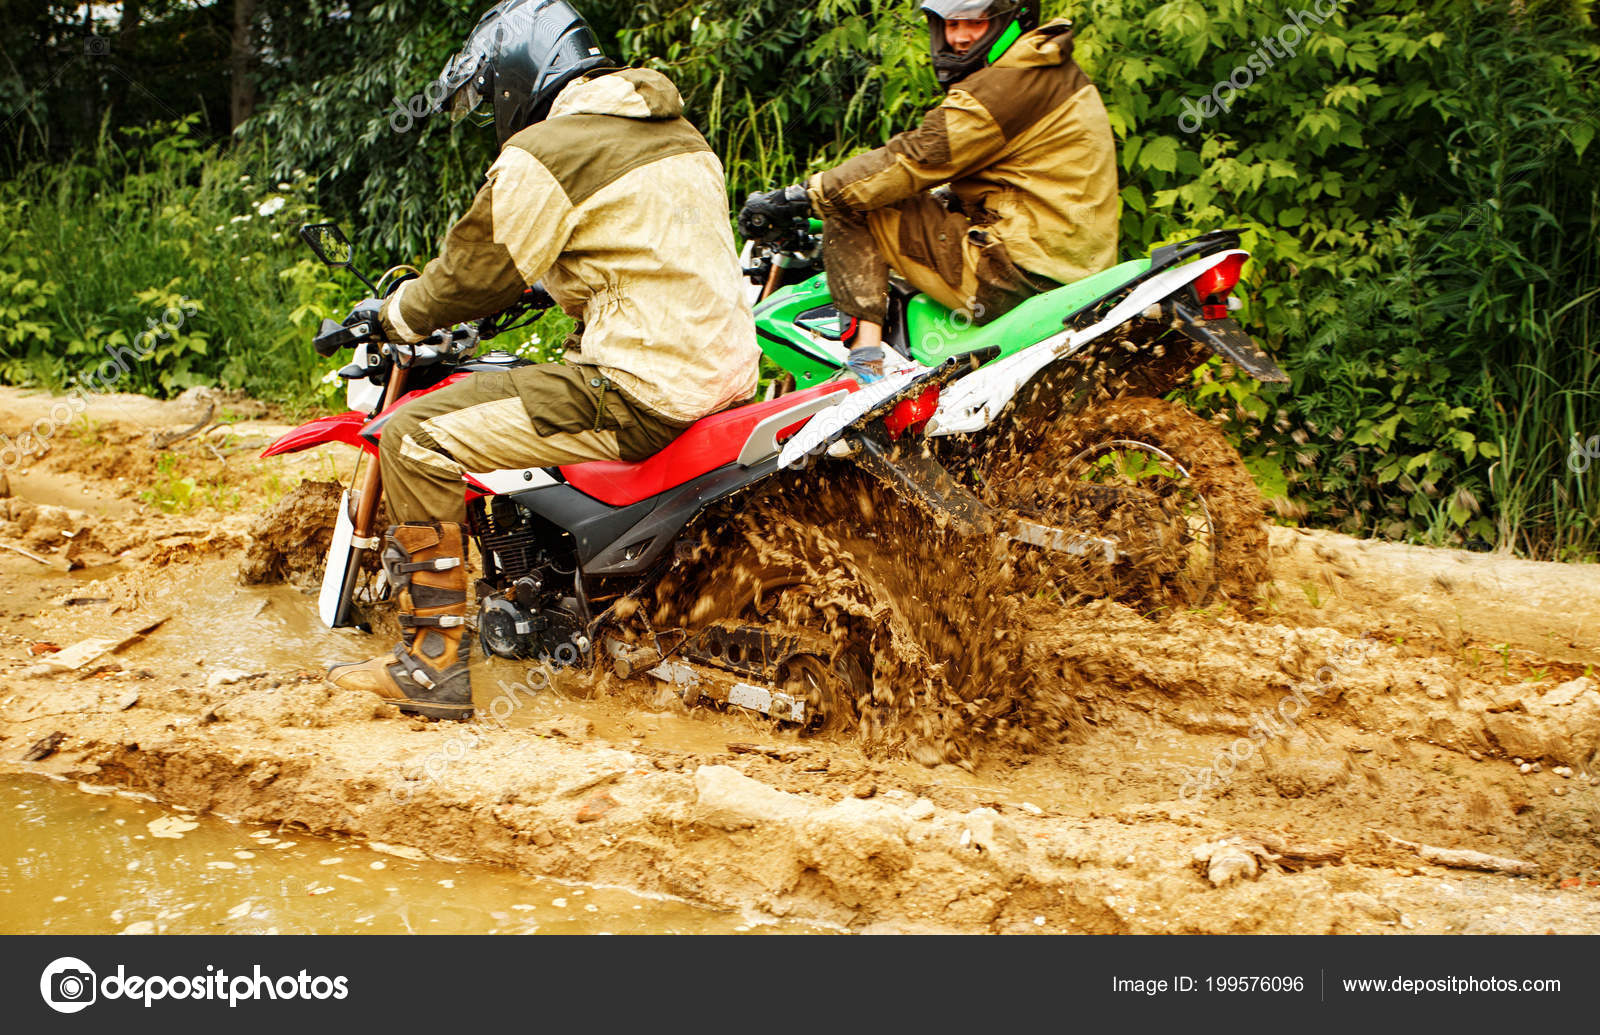 Prépa de ma HONDA CRF 250 L - Page 2 Depositphotos_199576096-stock-photo-two-mens-on-a-motorcycle